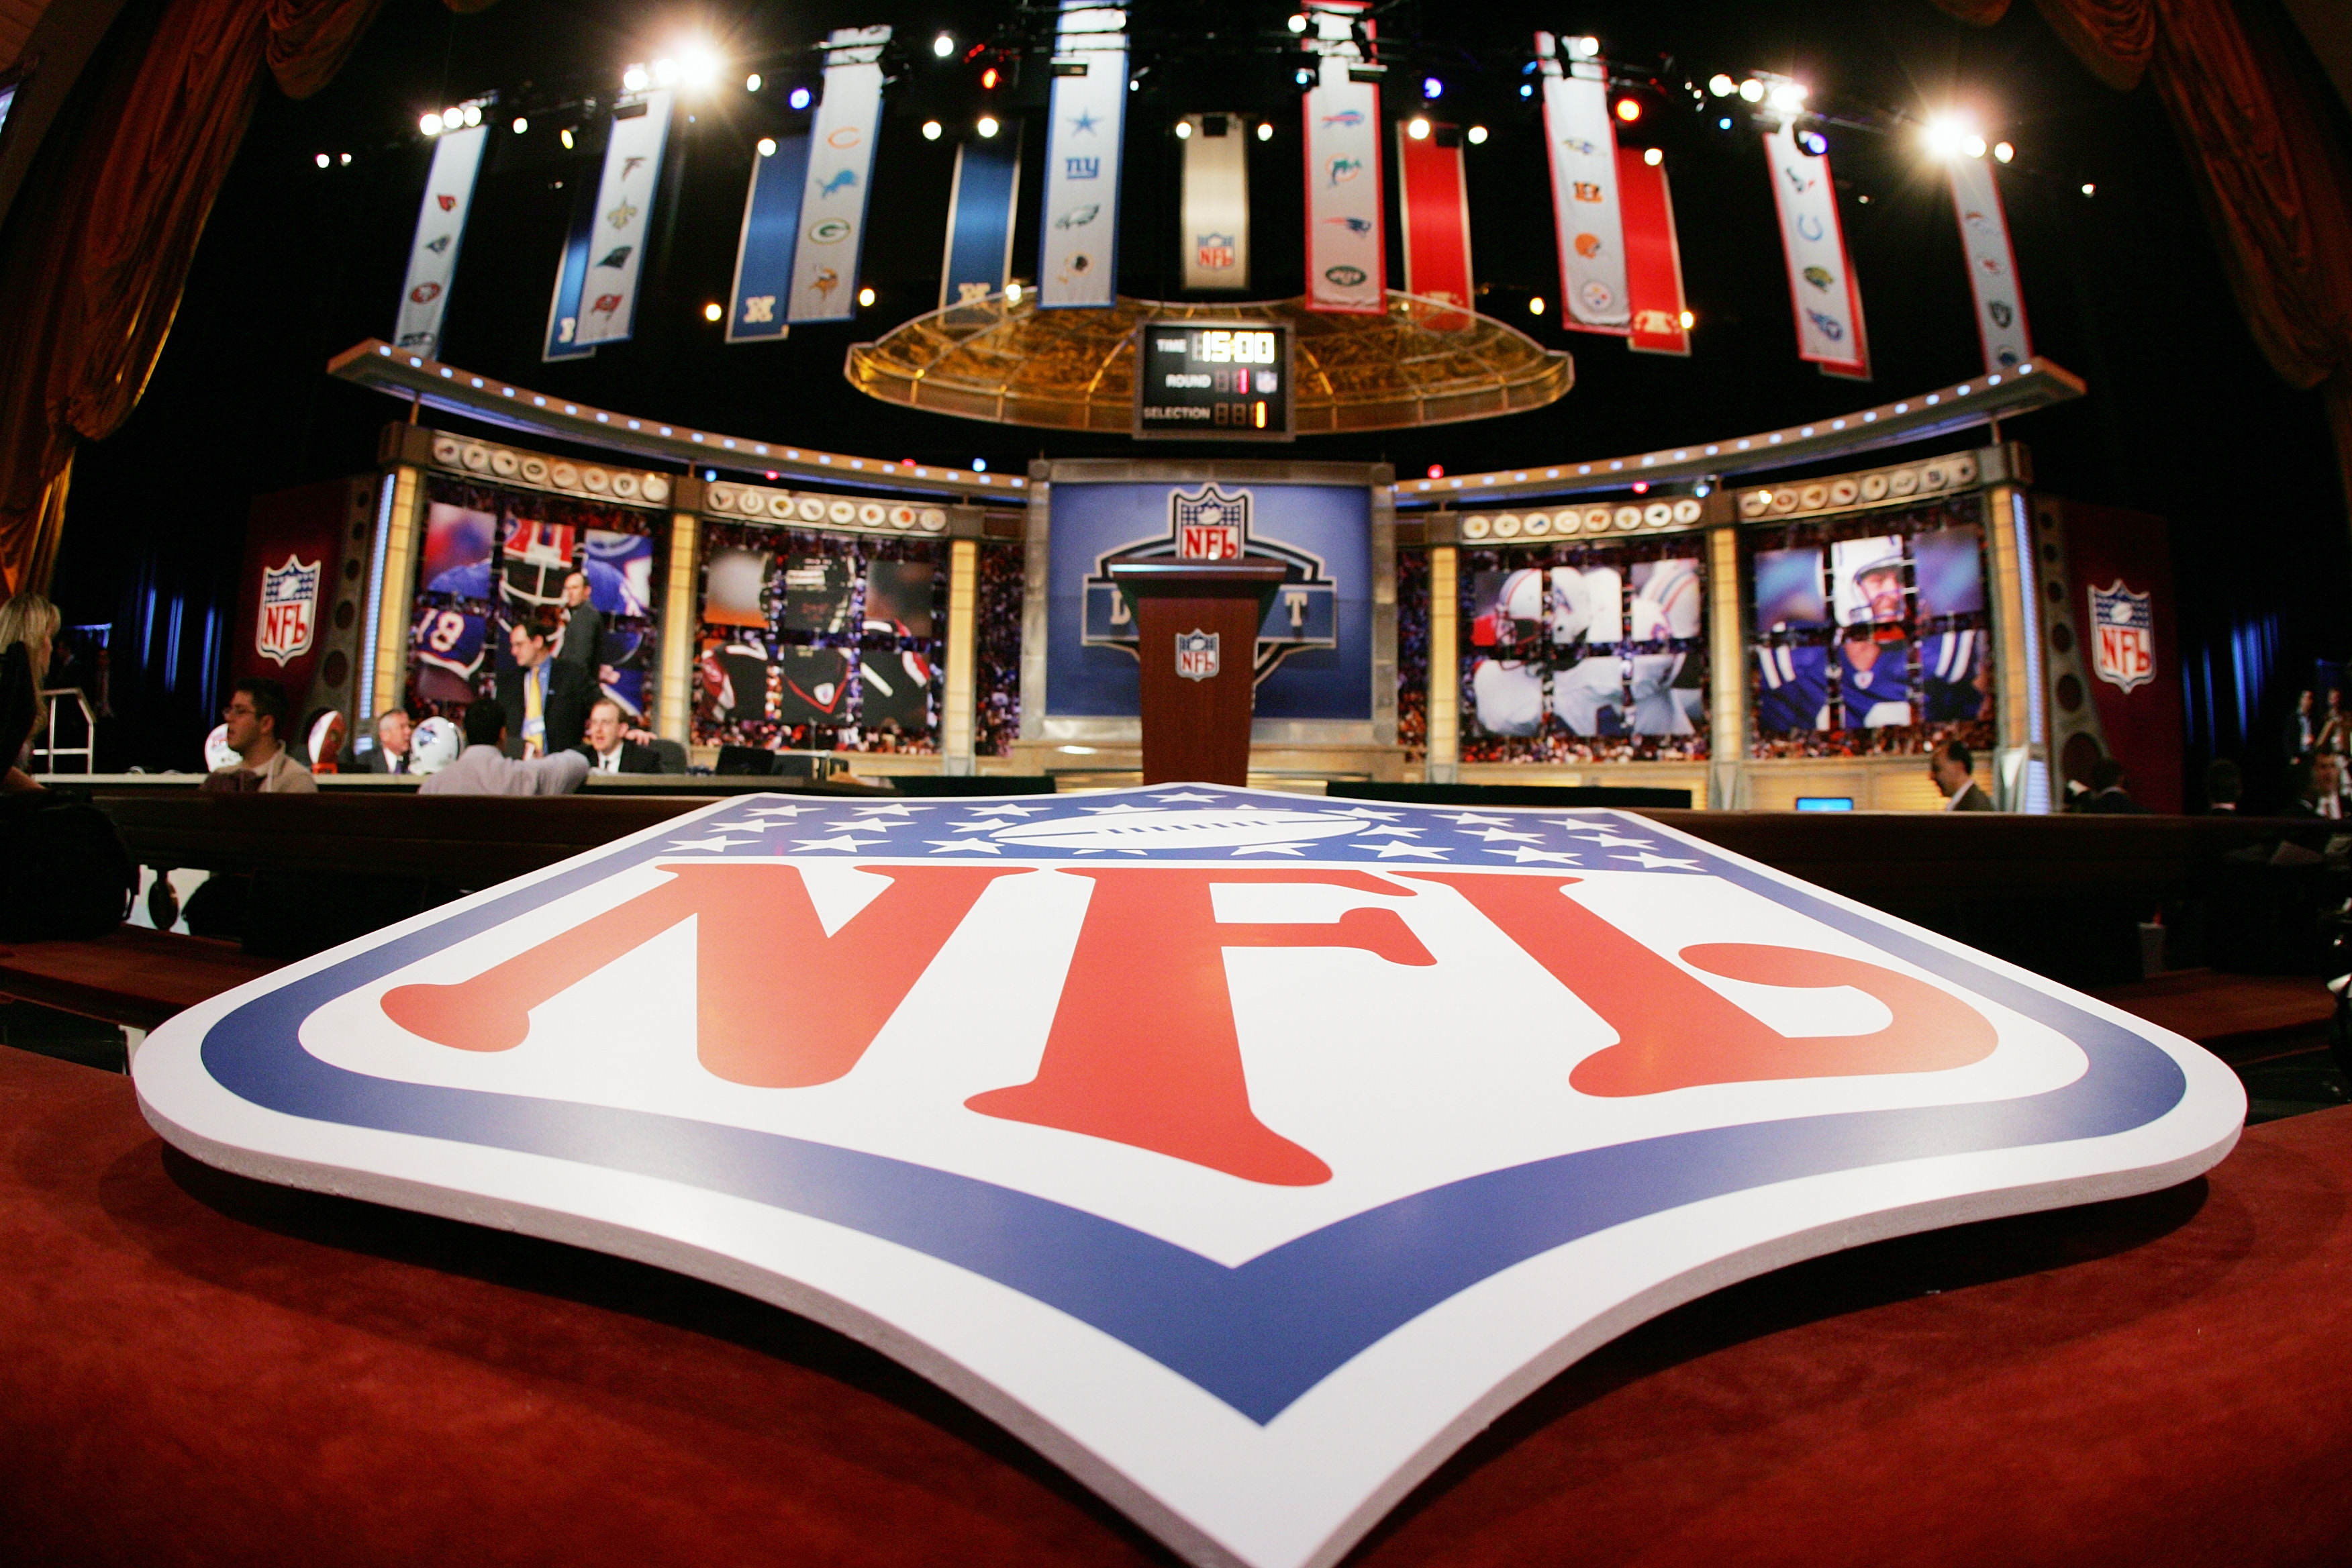 NFL's wild Las Vegas draft plan: Picks, boats and the Bellagio fountains